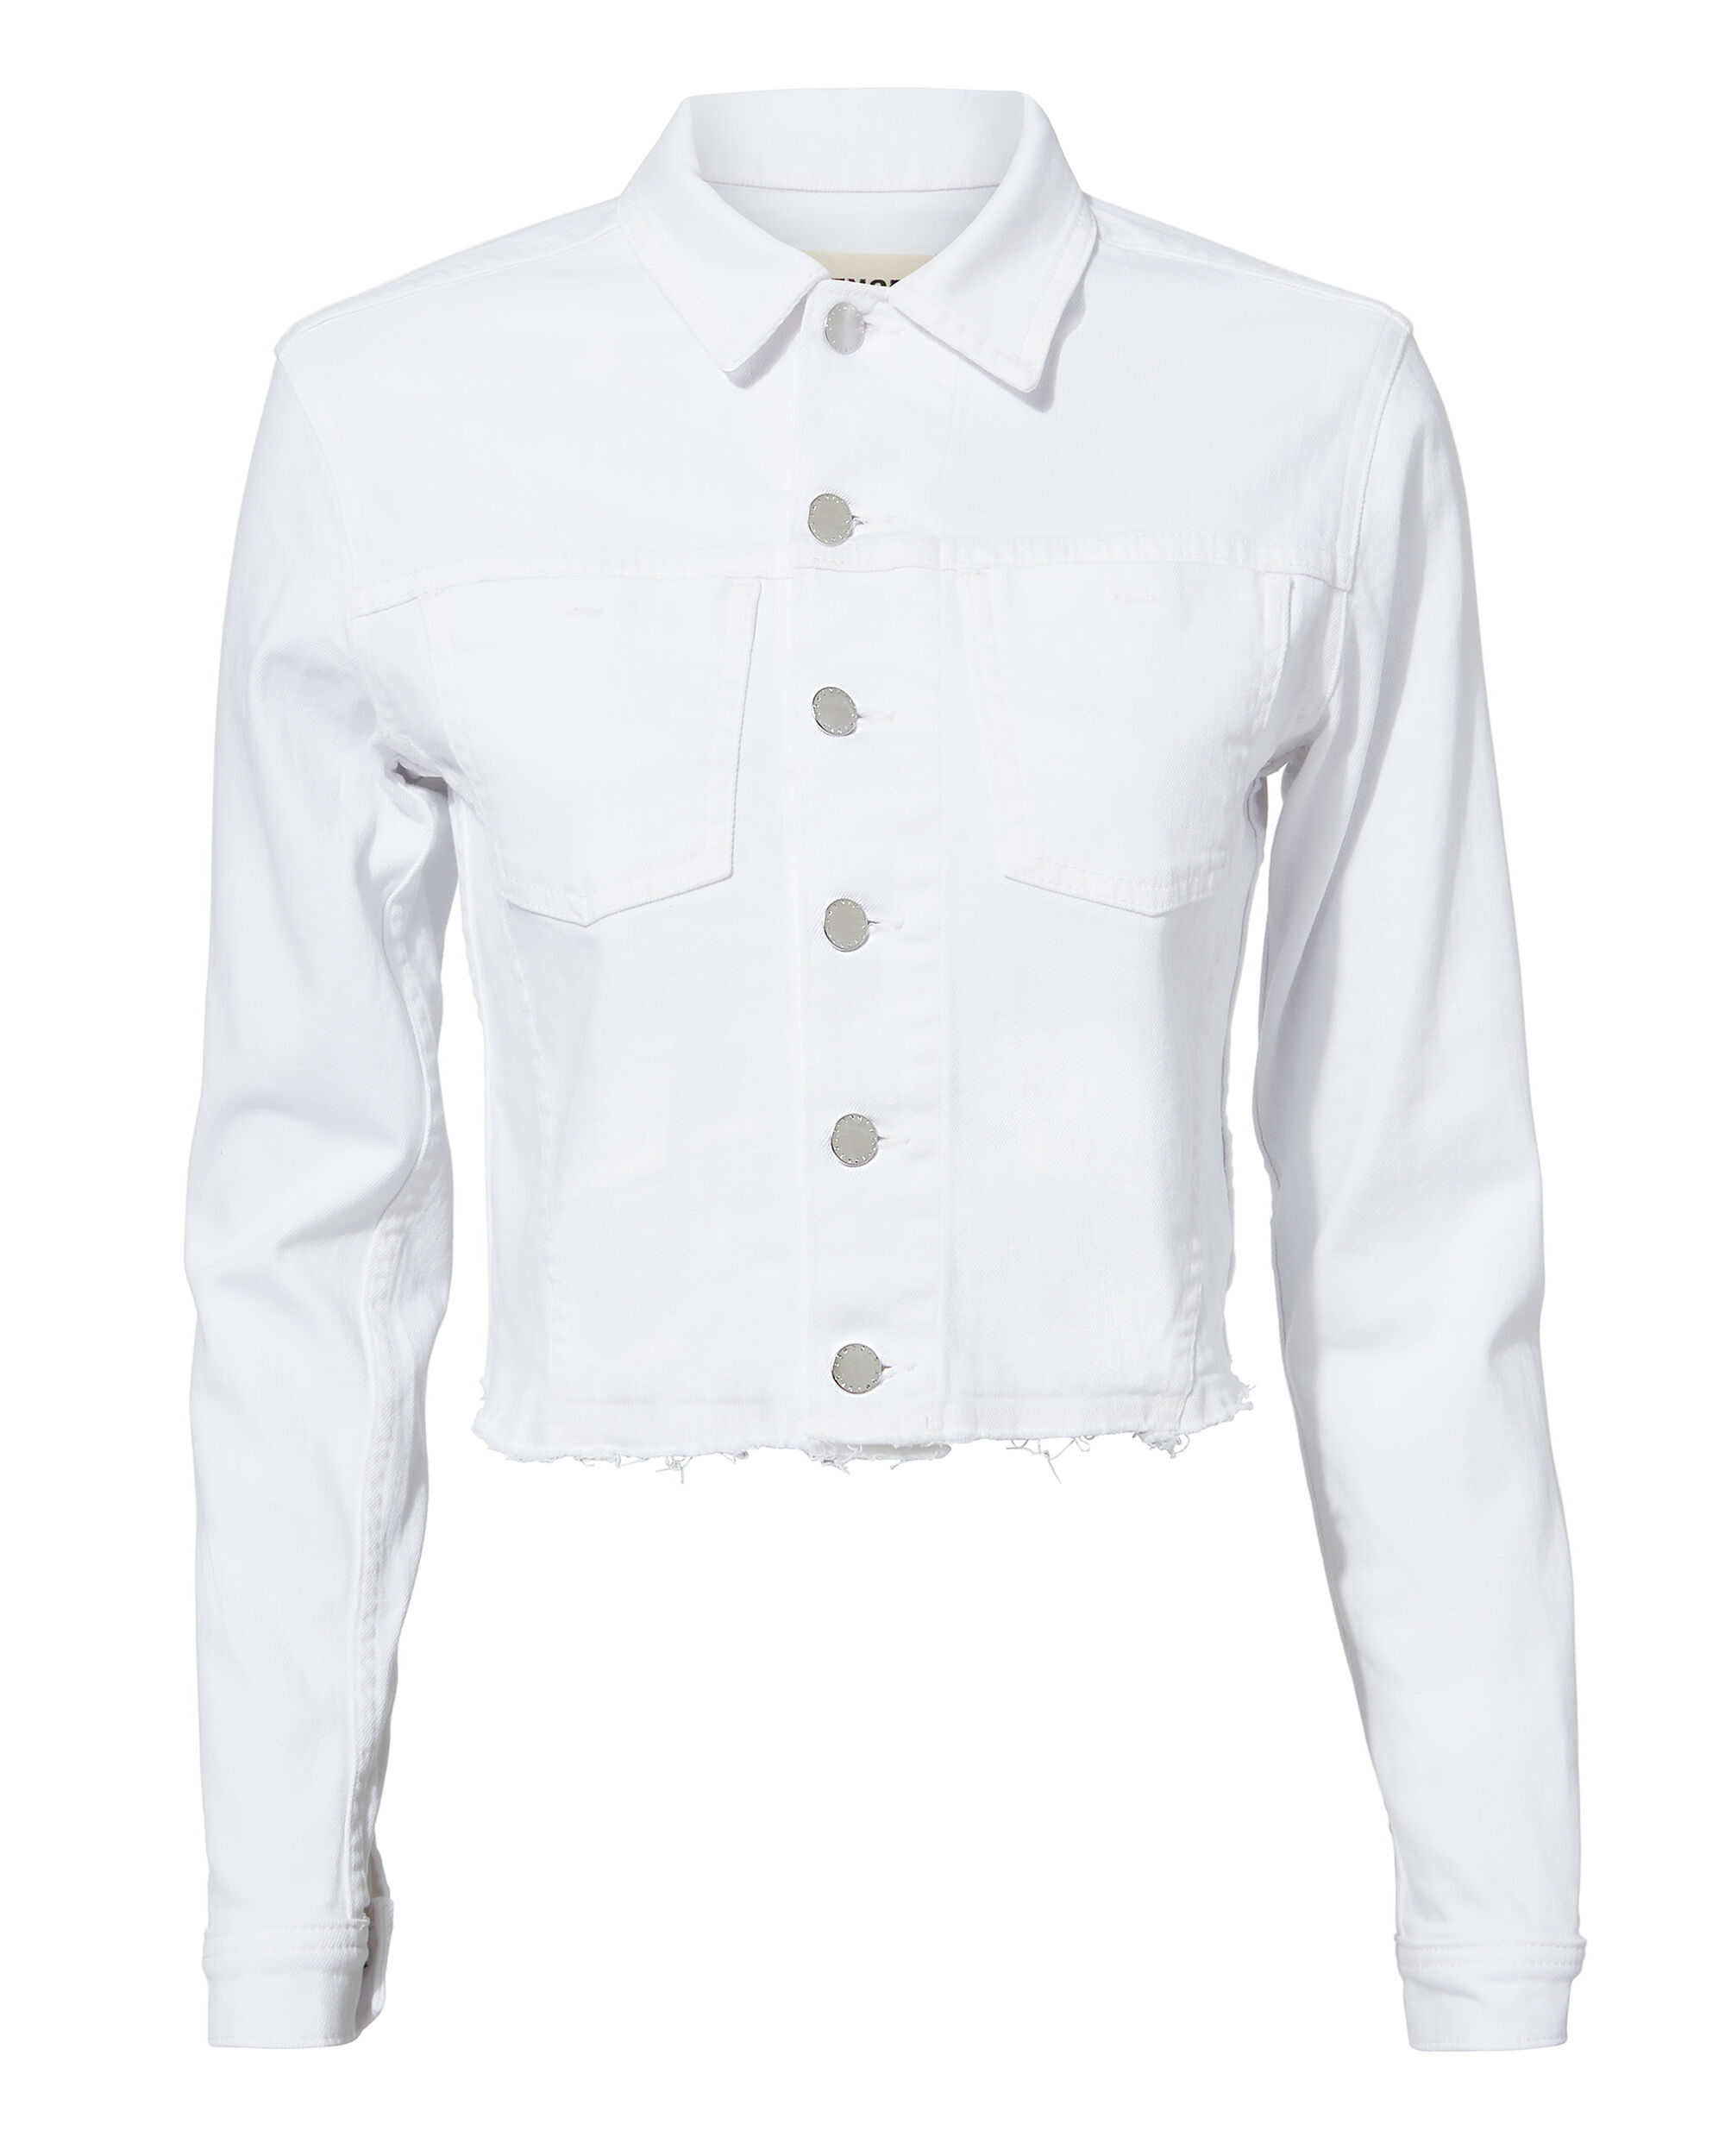 Zuma White Jacket, WHITE, hi-res